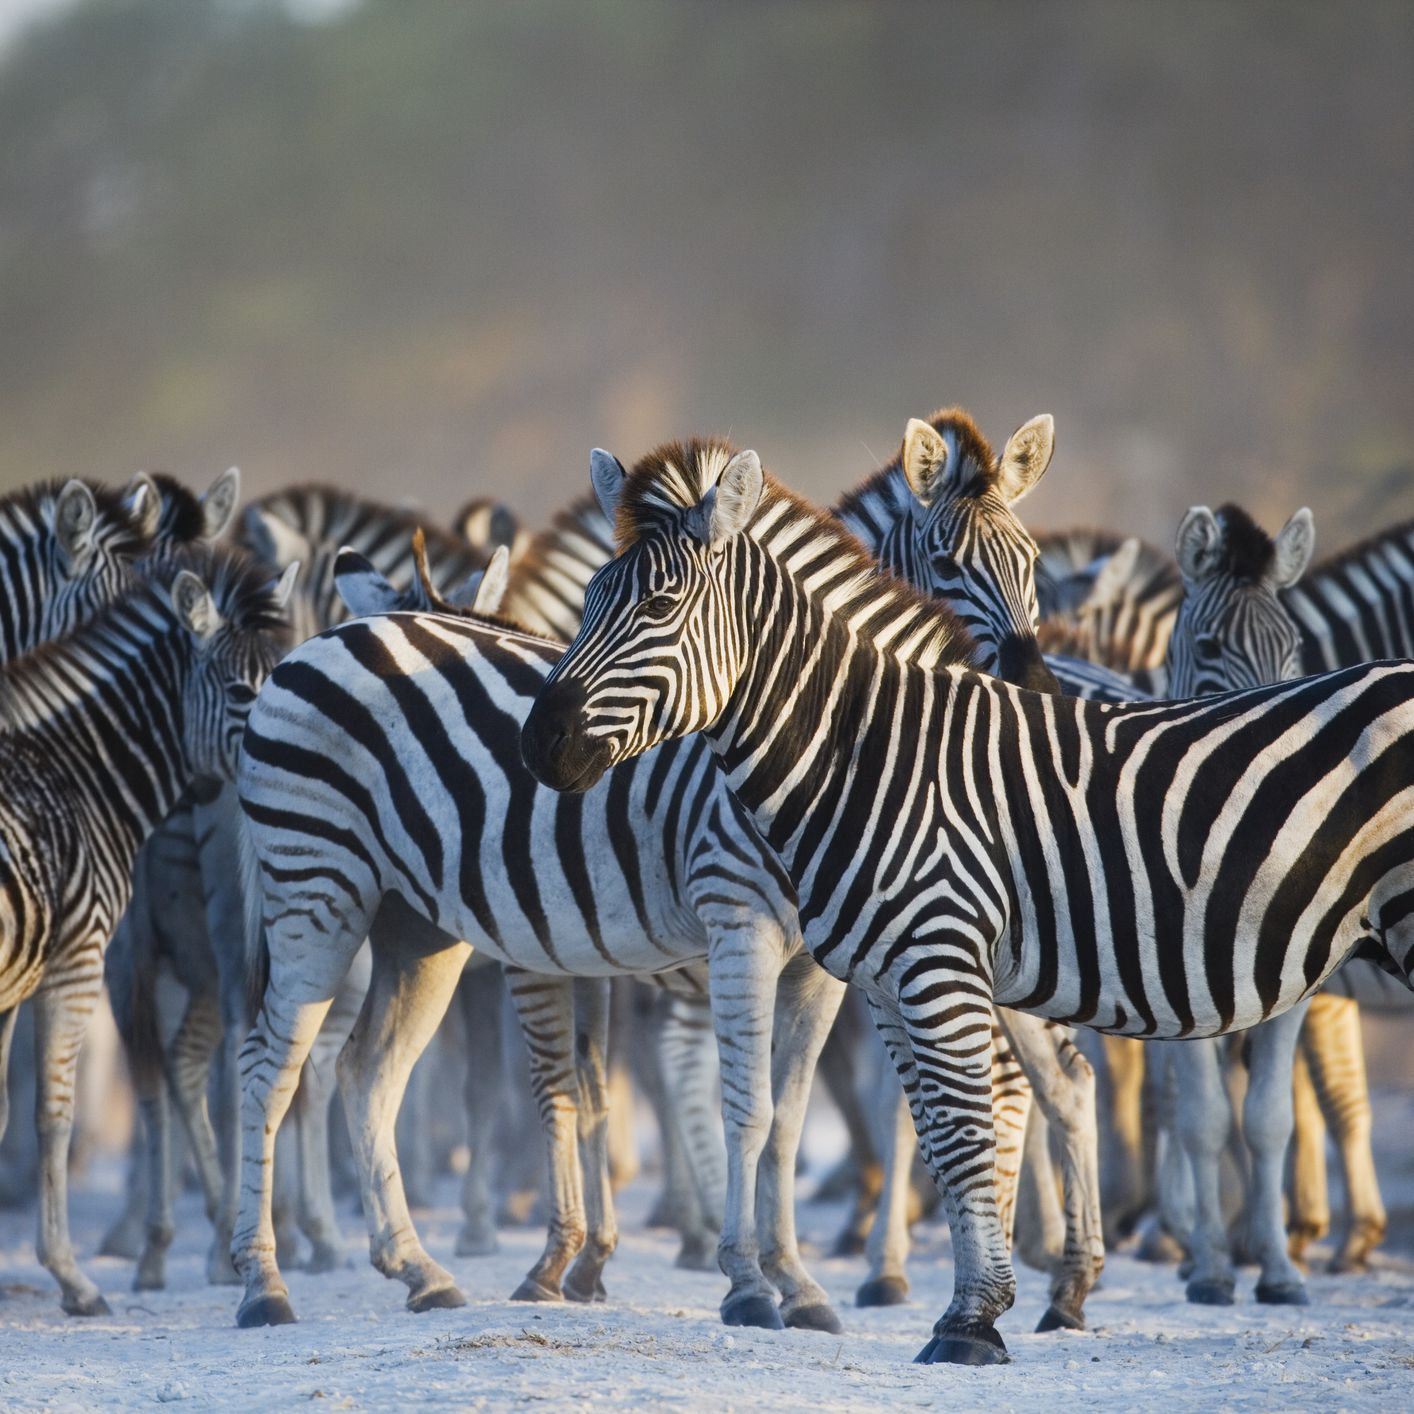 Africa's Top 10 Safari Animals and Where to See Them